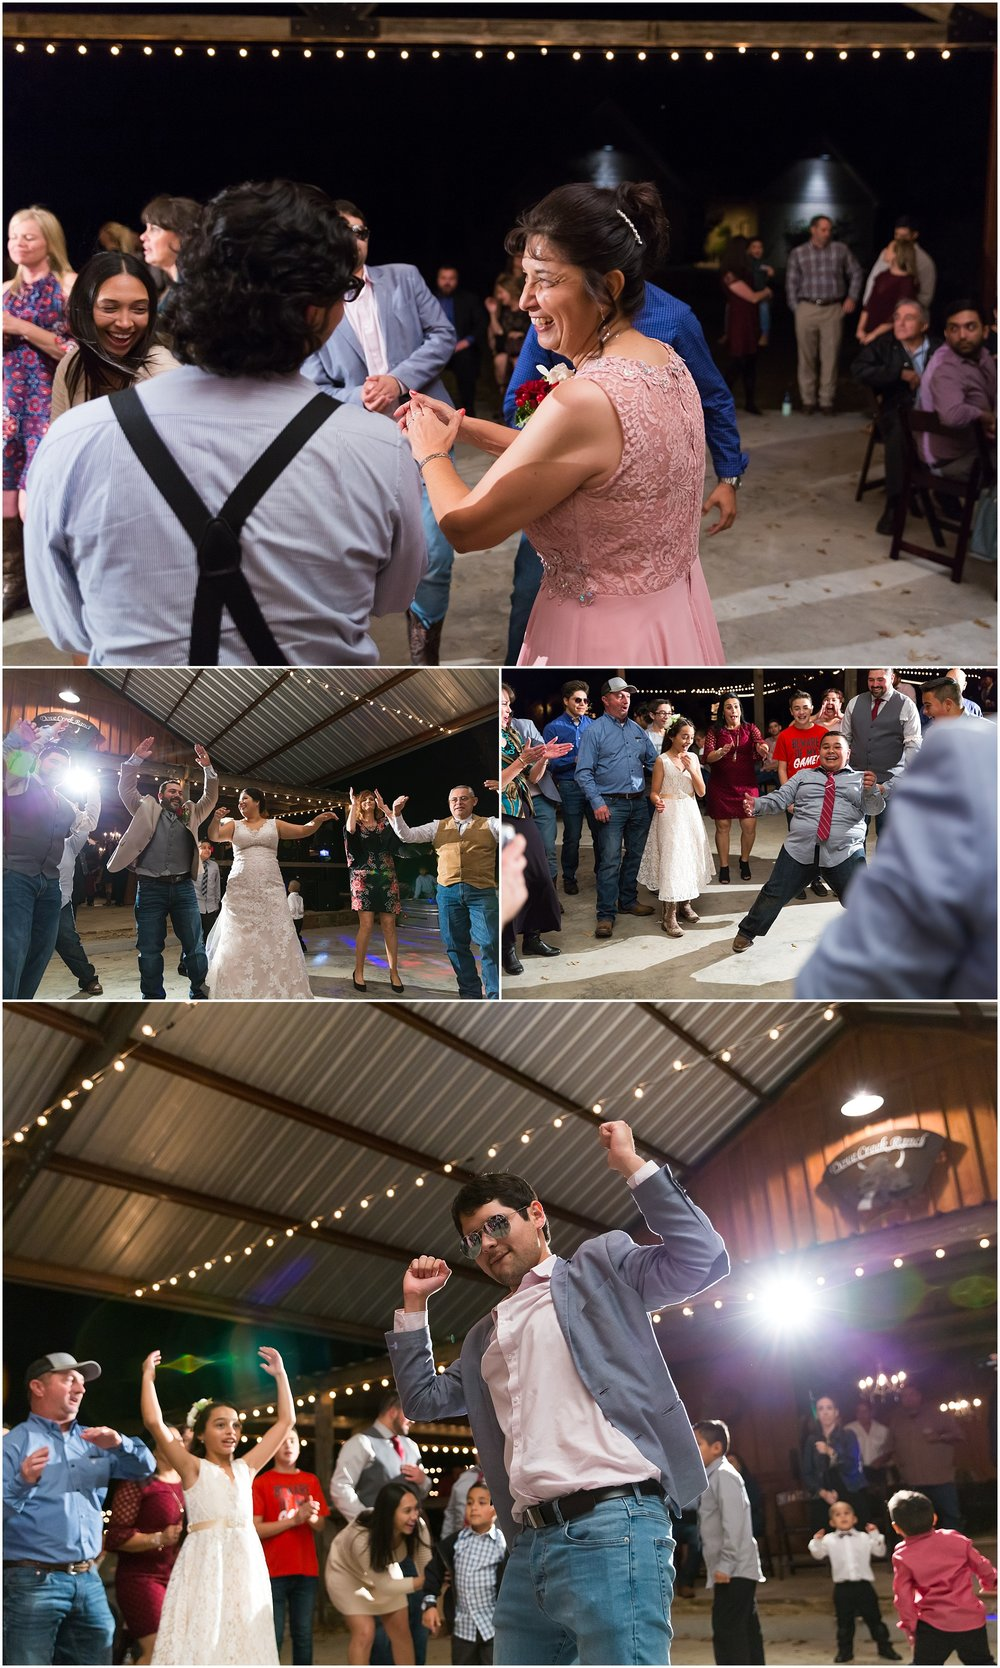 Dance party reception - Dove Creek Ranch in Dublin, Texas - Jason & Melaina Photography - www.jasonandmelaina.com